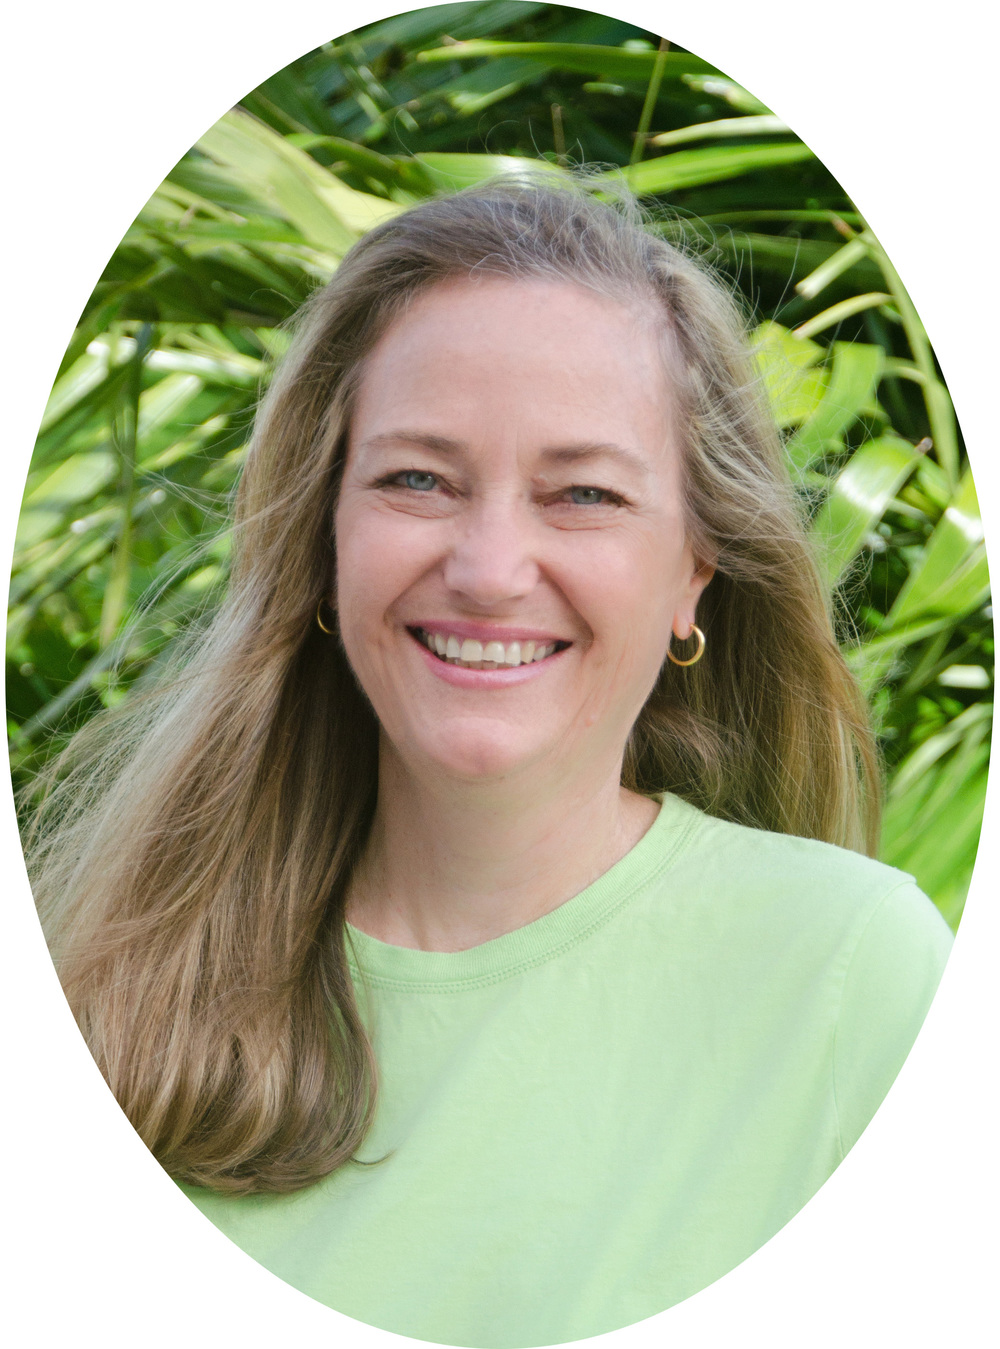 About Susan Sorensen - Founder of Learn 2 Focus - Mother & Brain Training Expert in Honolulu